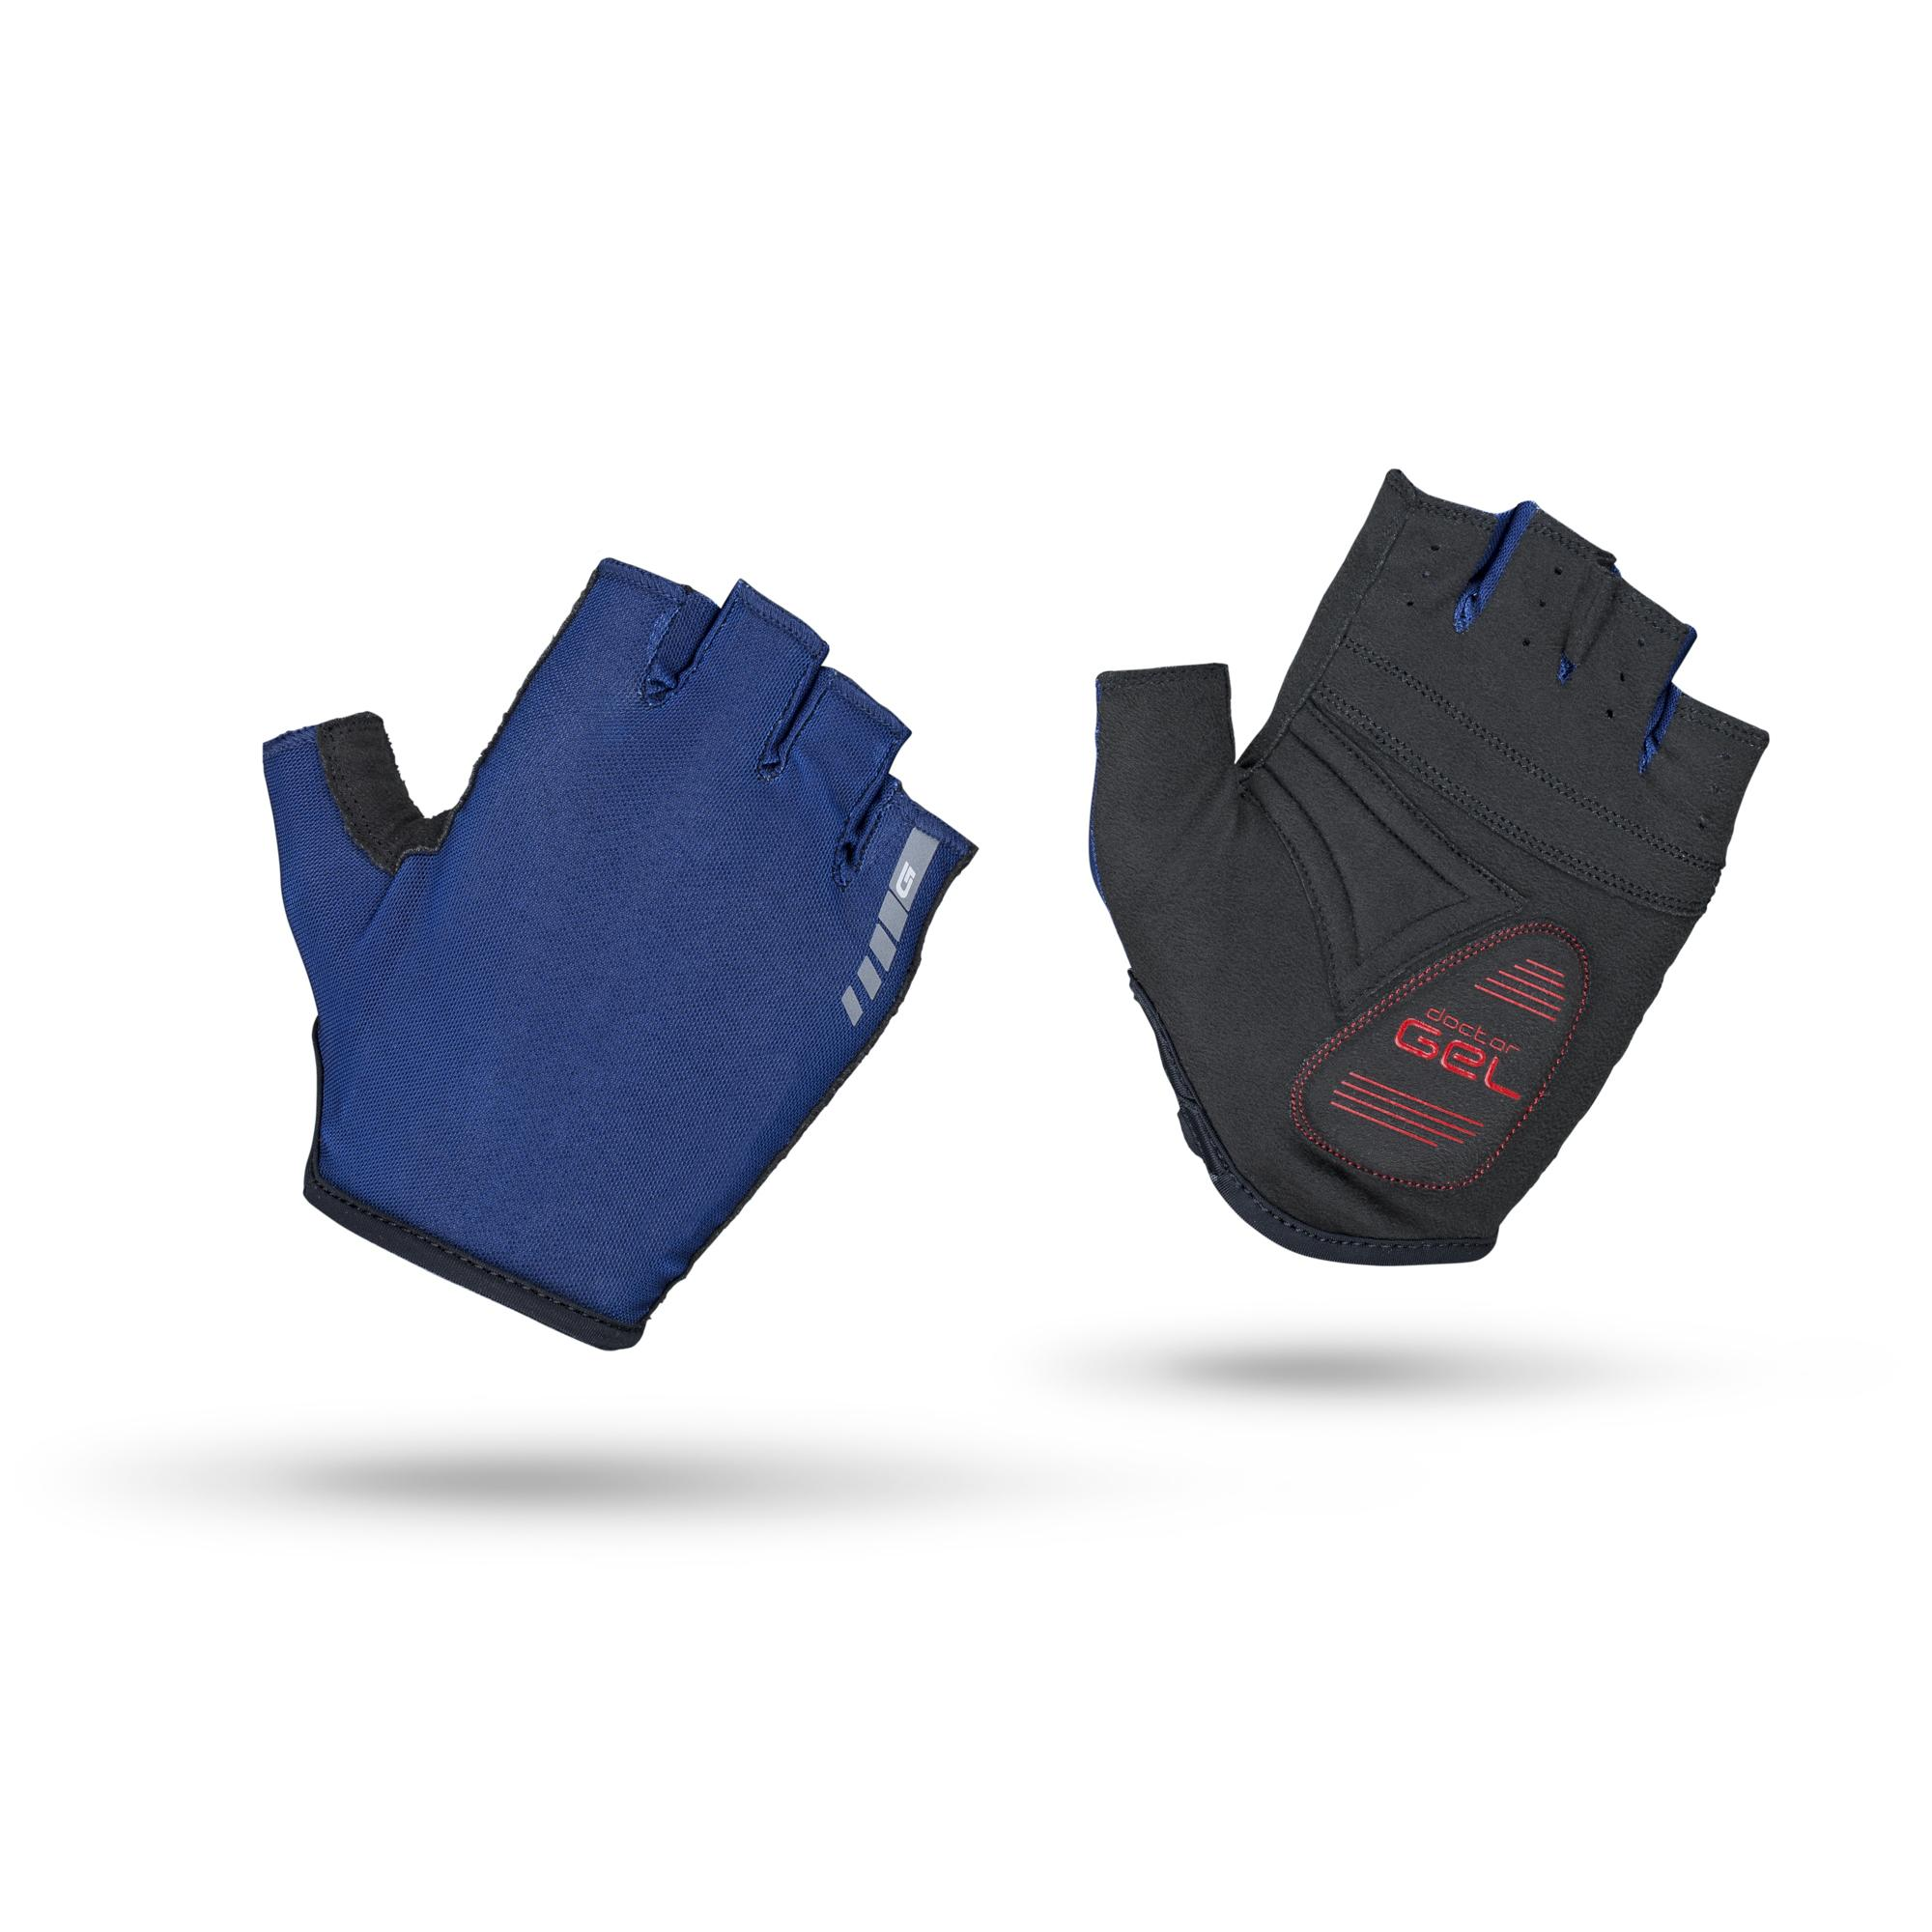 GripGrab Fietshandschoenen zomer Unisex Blauw / Solara Padded Tan Through Short Finger Glove